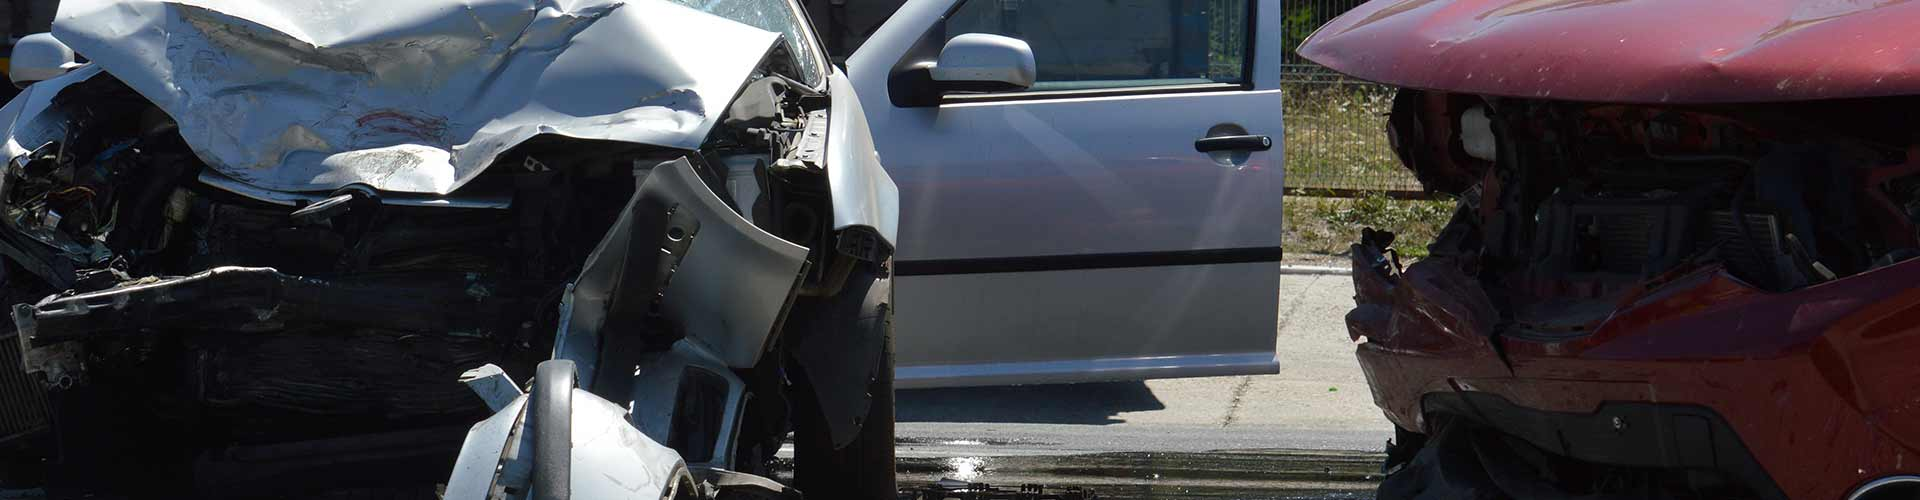 Kershaw & Camden Car Accident Lawyer